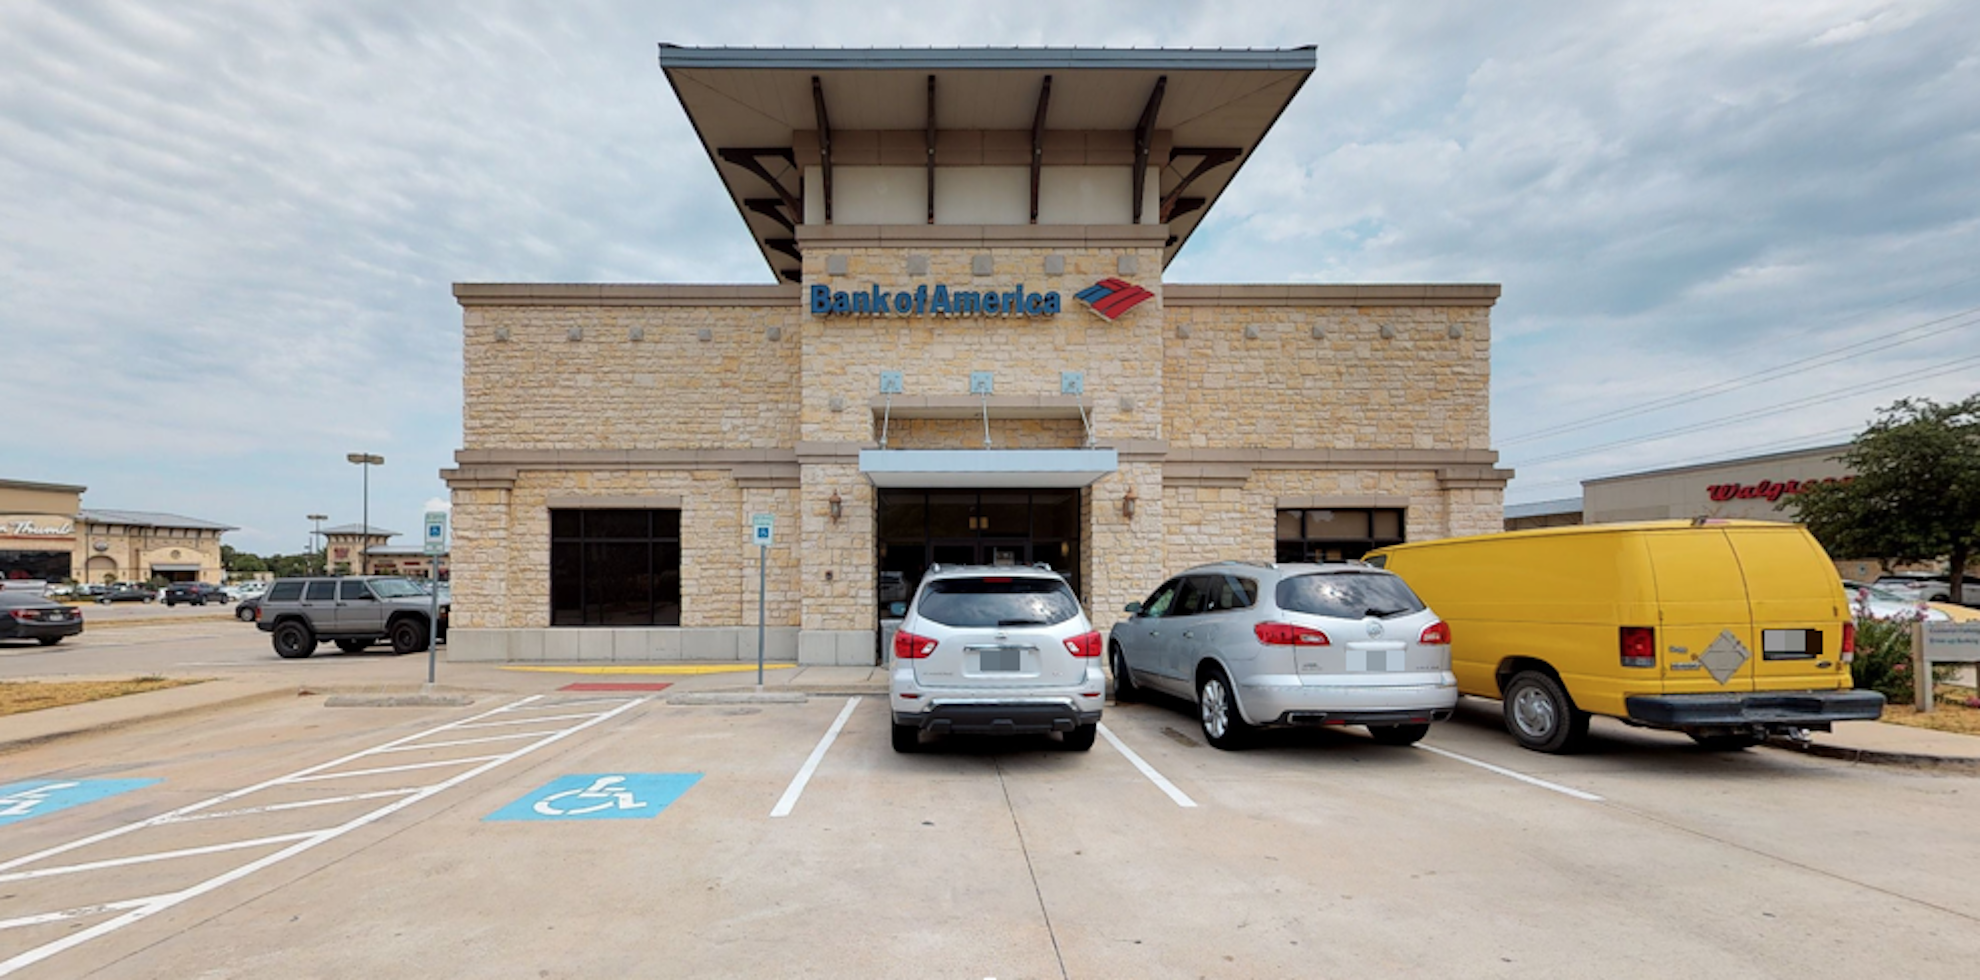 Bank of America financial center with drive-thru ATM | 353 Trophy Lake Dr, Trophy Club, TX 76262